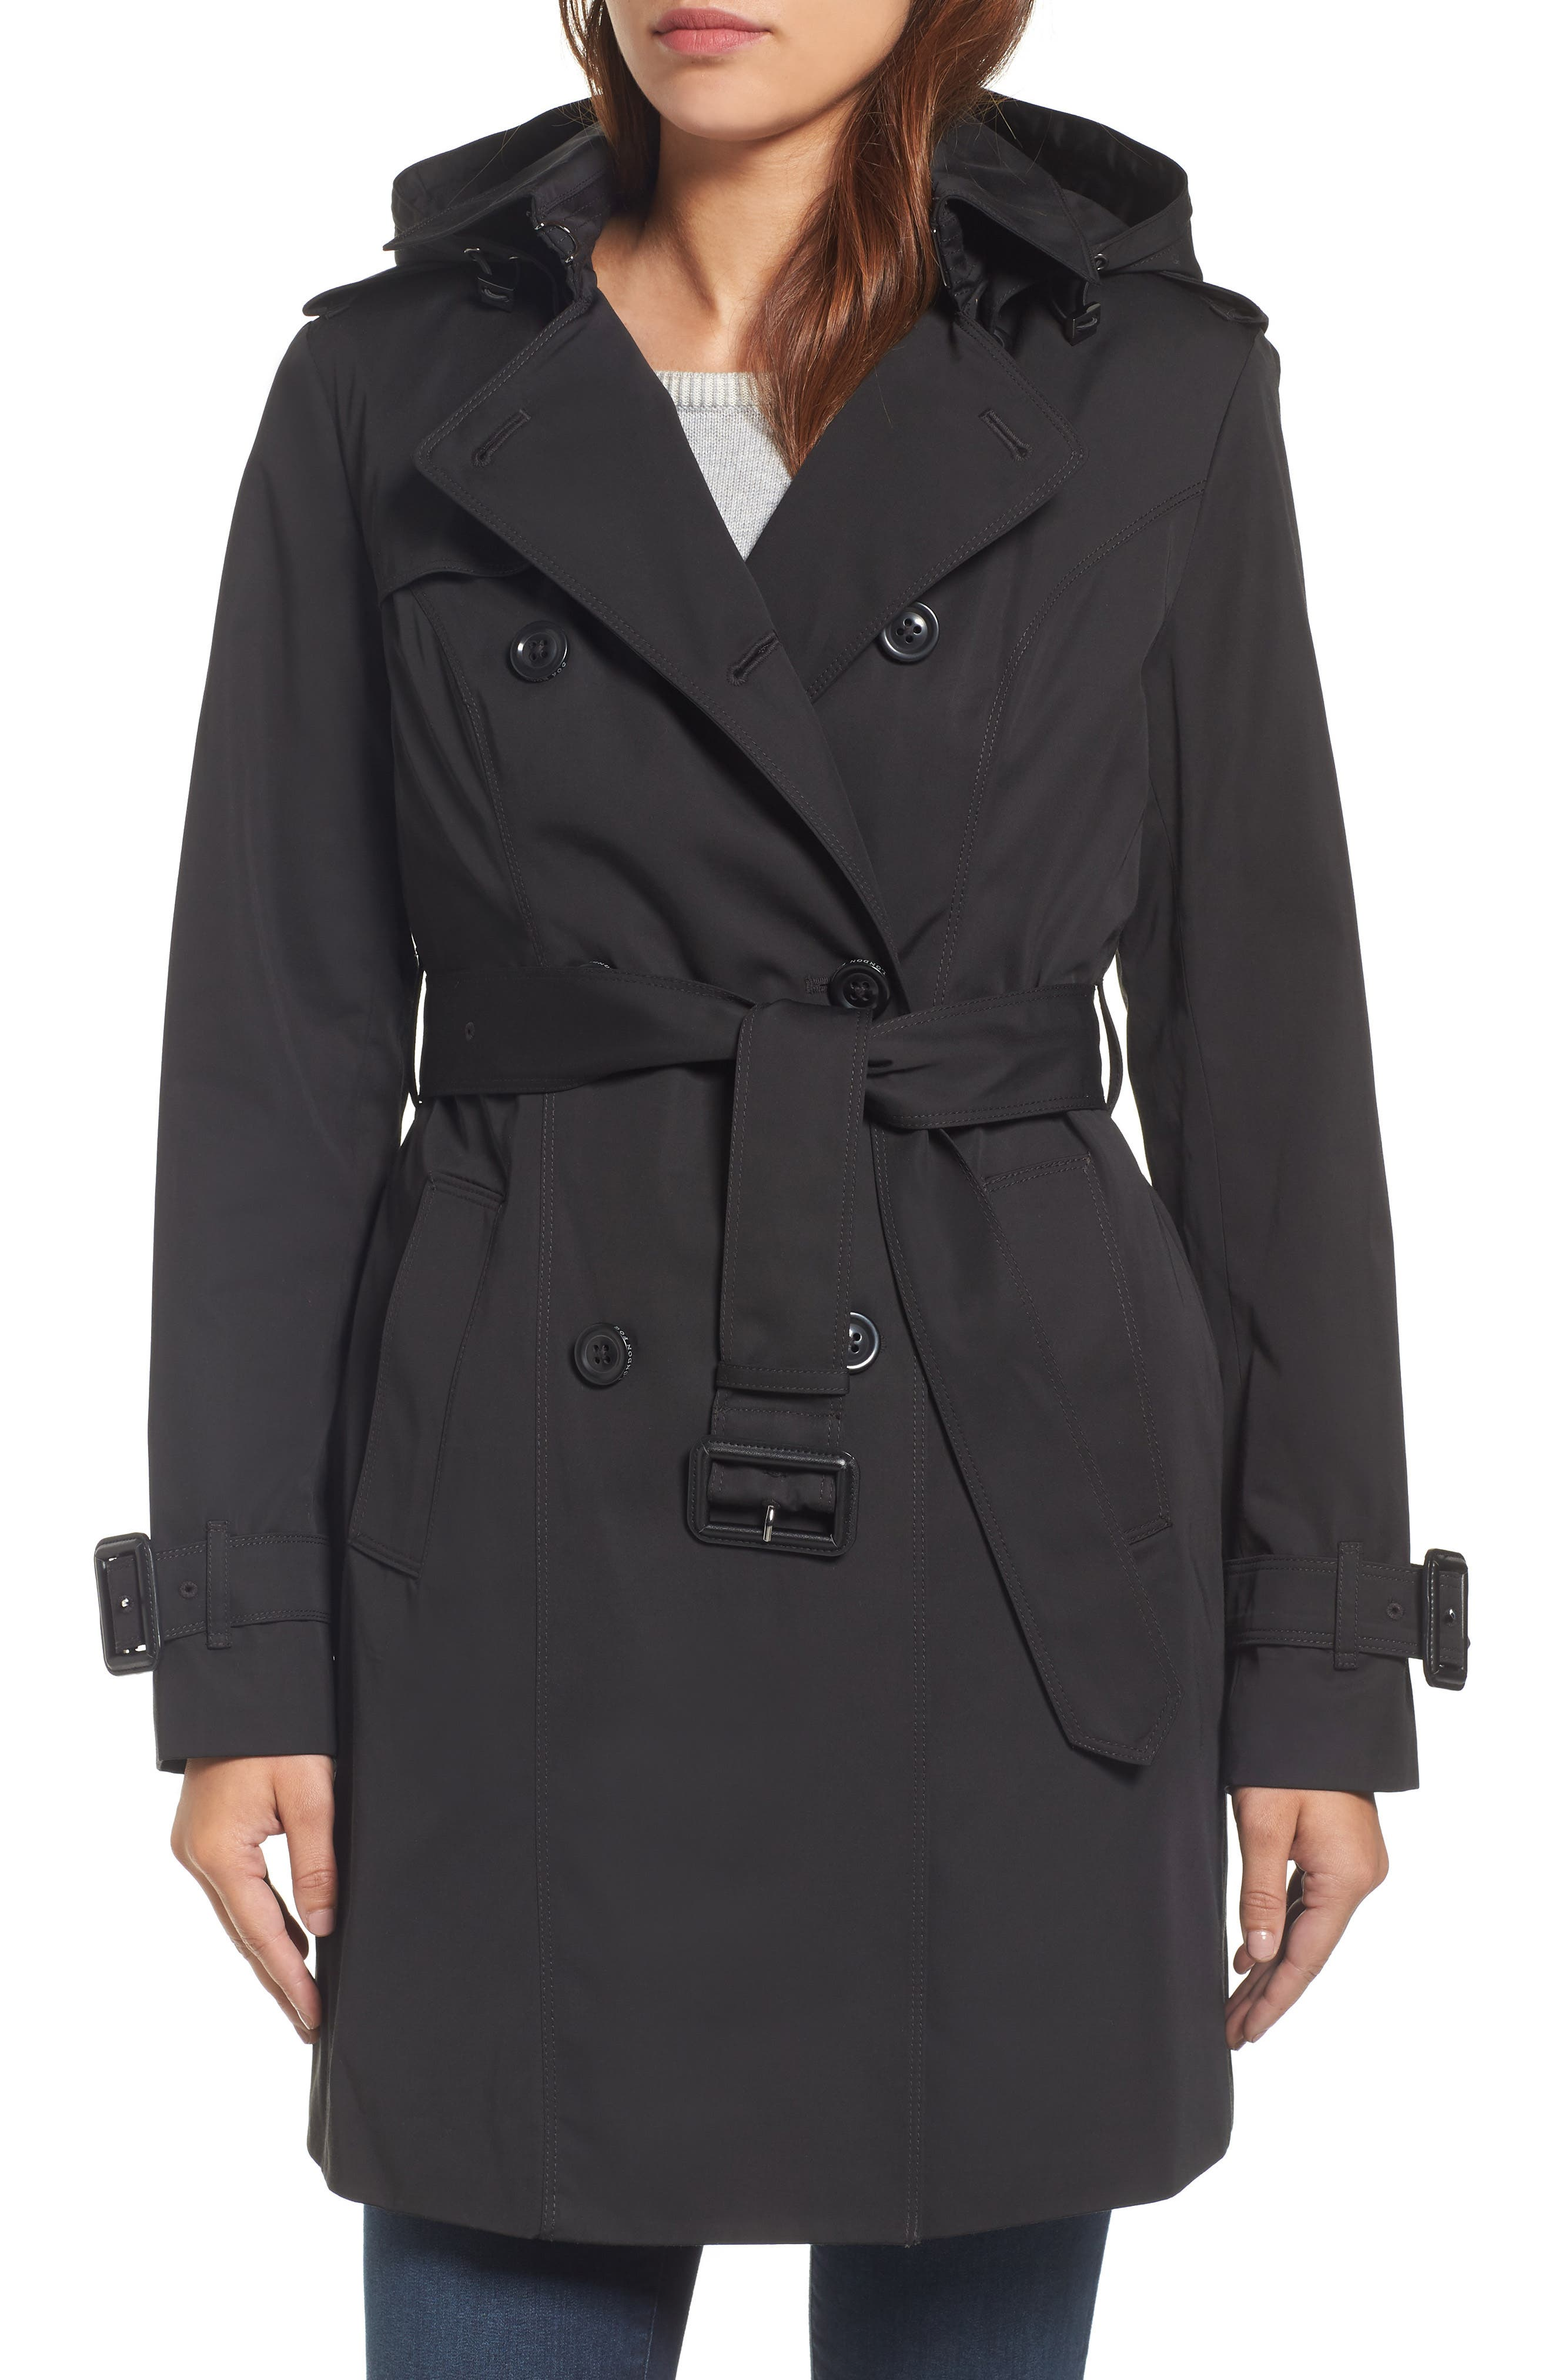 Heritage Trench Coat with Detachable Liner,                             Main thumbnail 1, color,                             Black